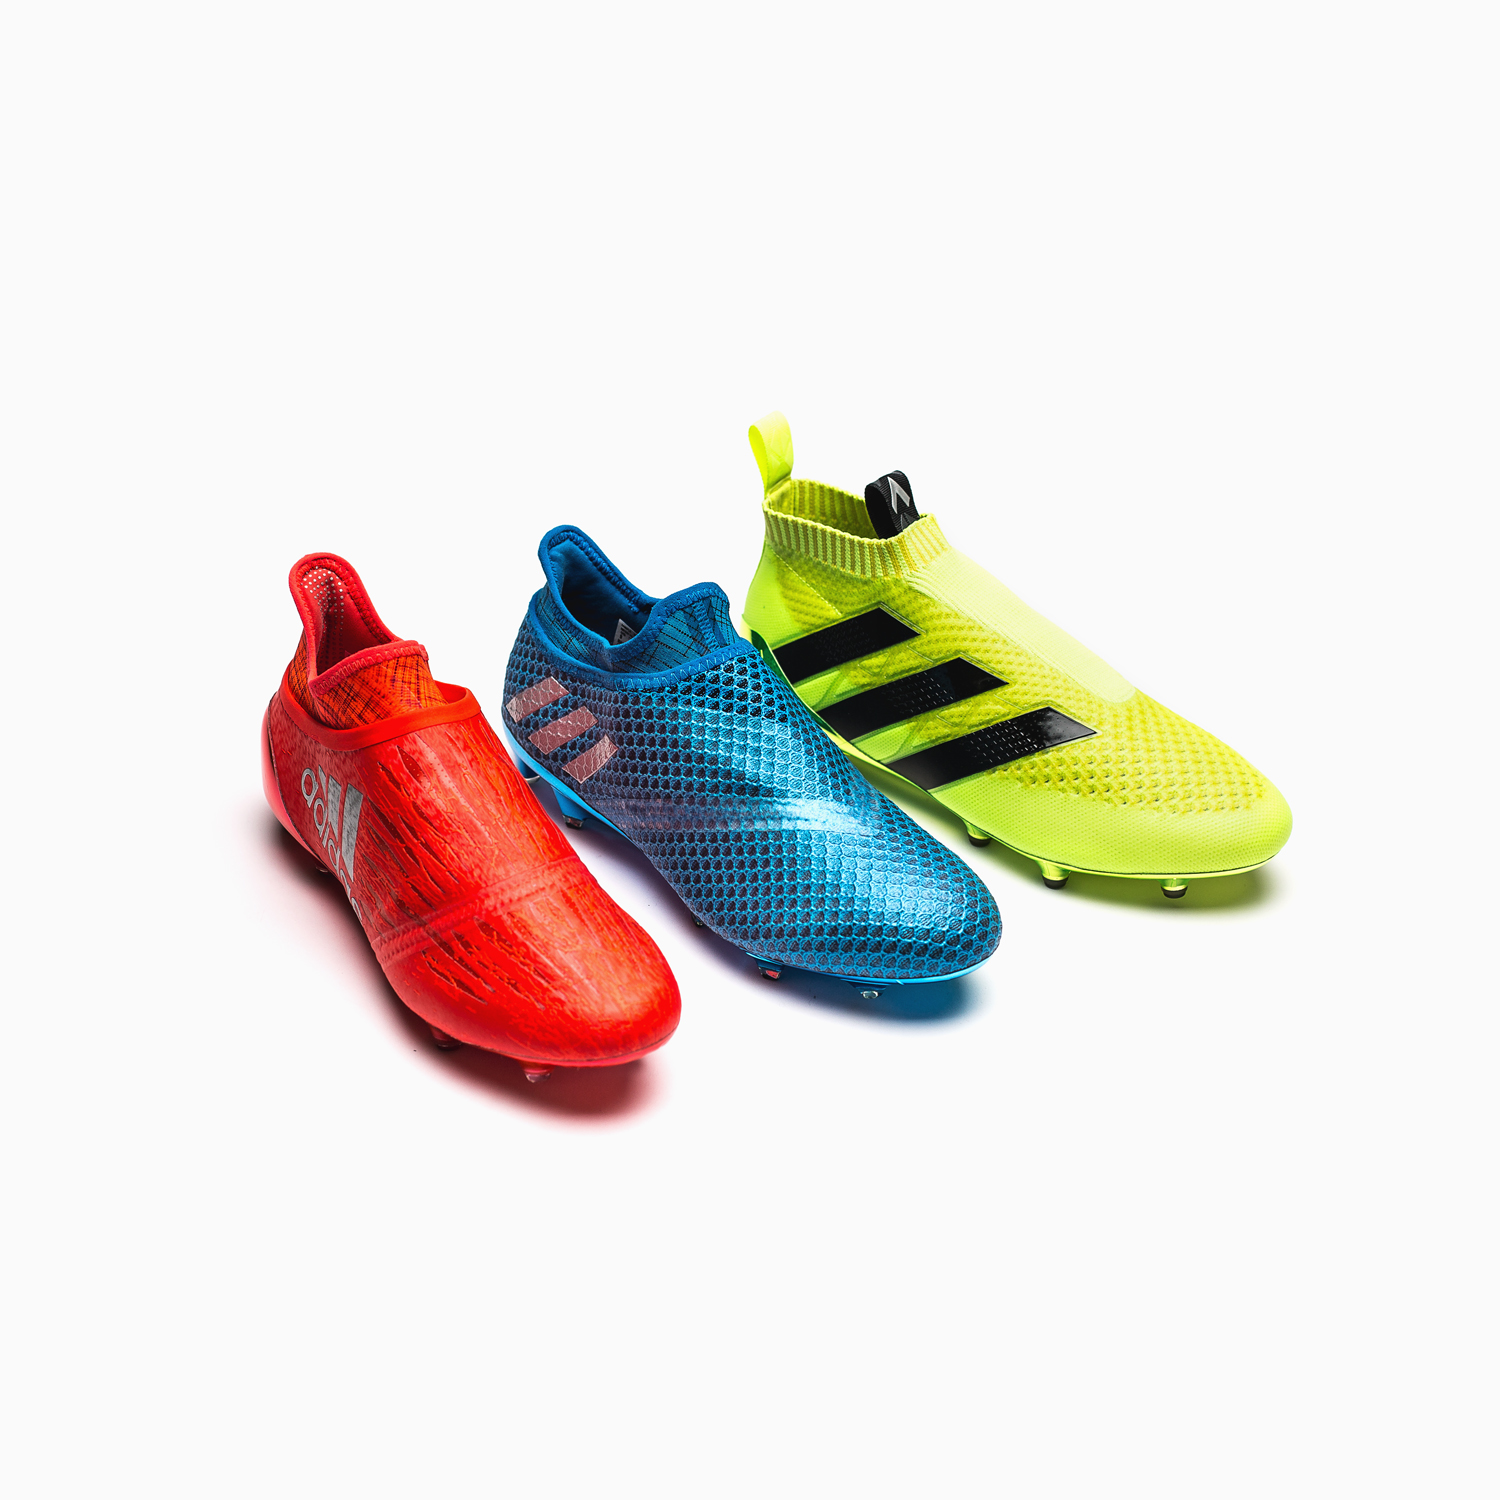 Le Pack adidas 'Speed of Light' révélé ! |